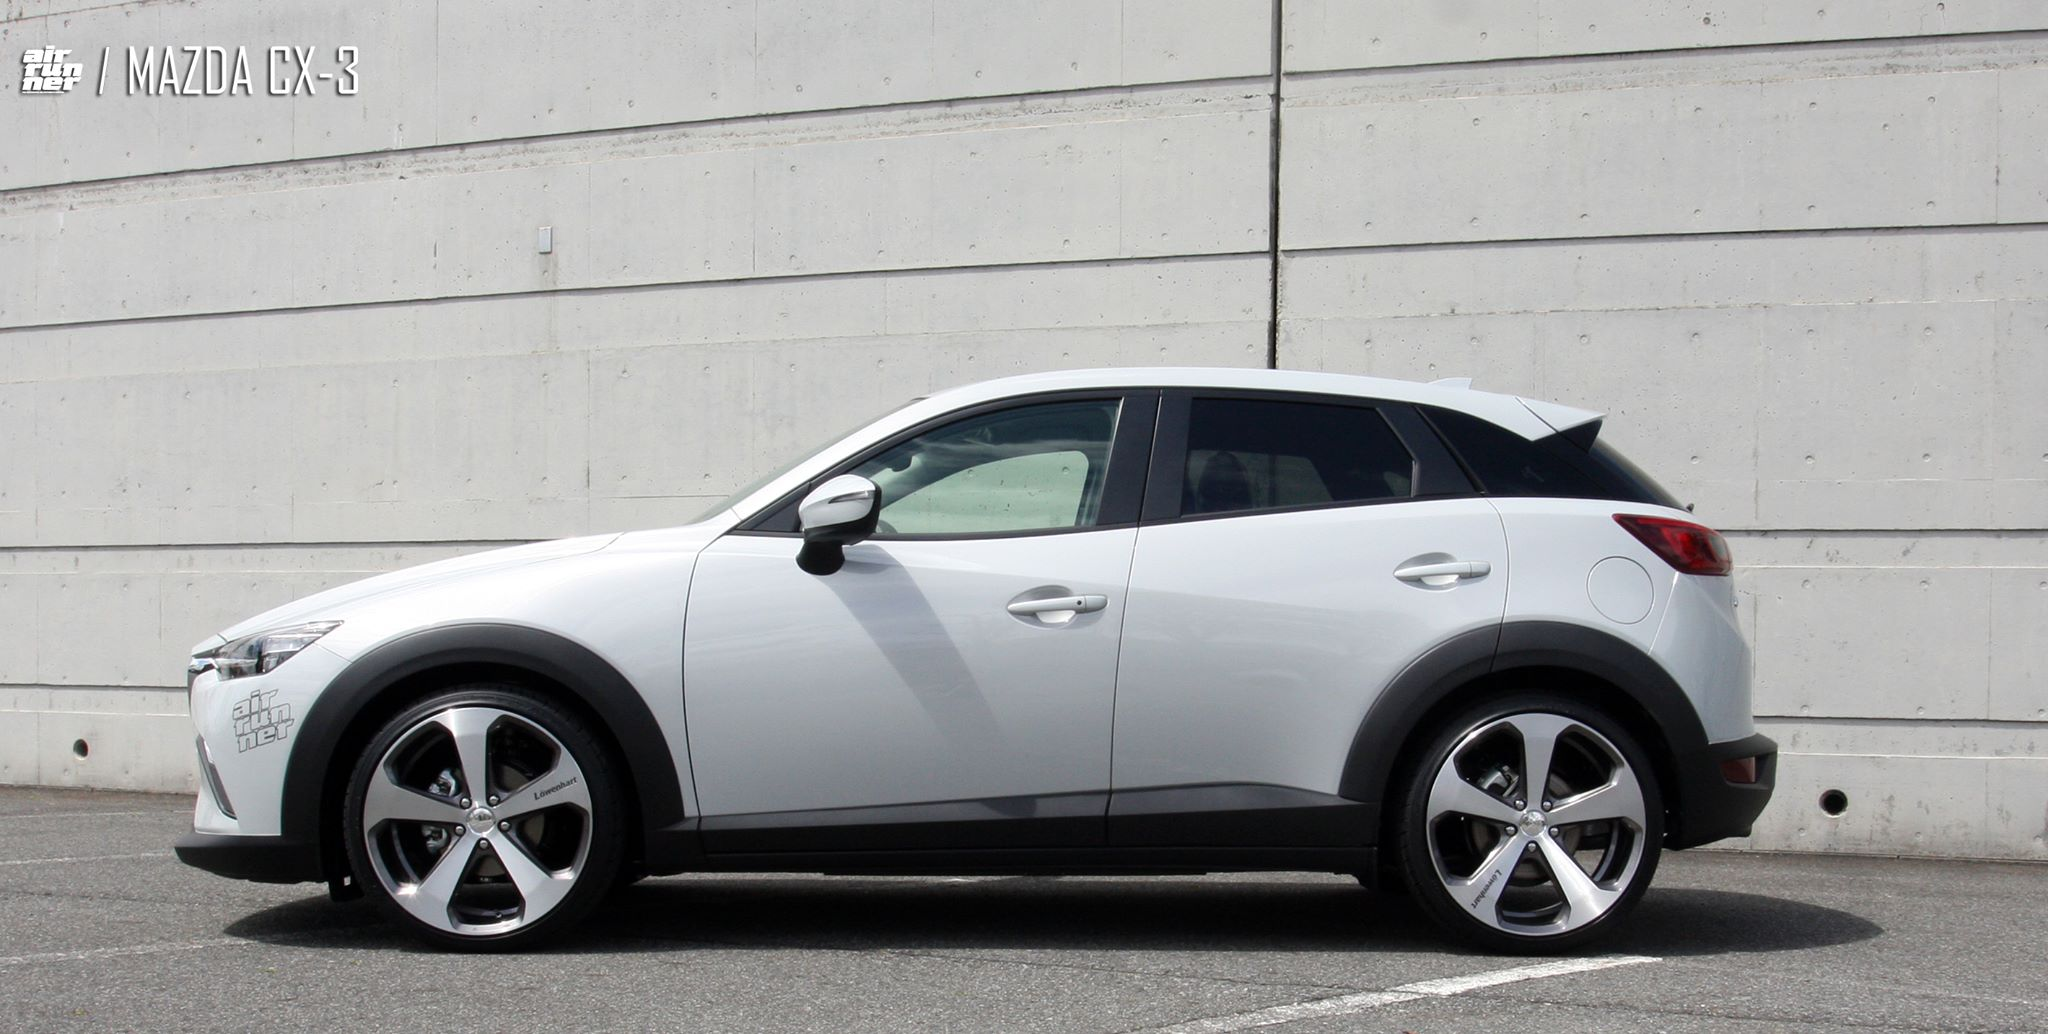 lowered cx-3 air runner on lowenhart lv5 wheels - mazda cx3 forum